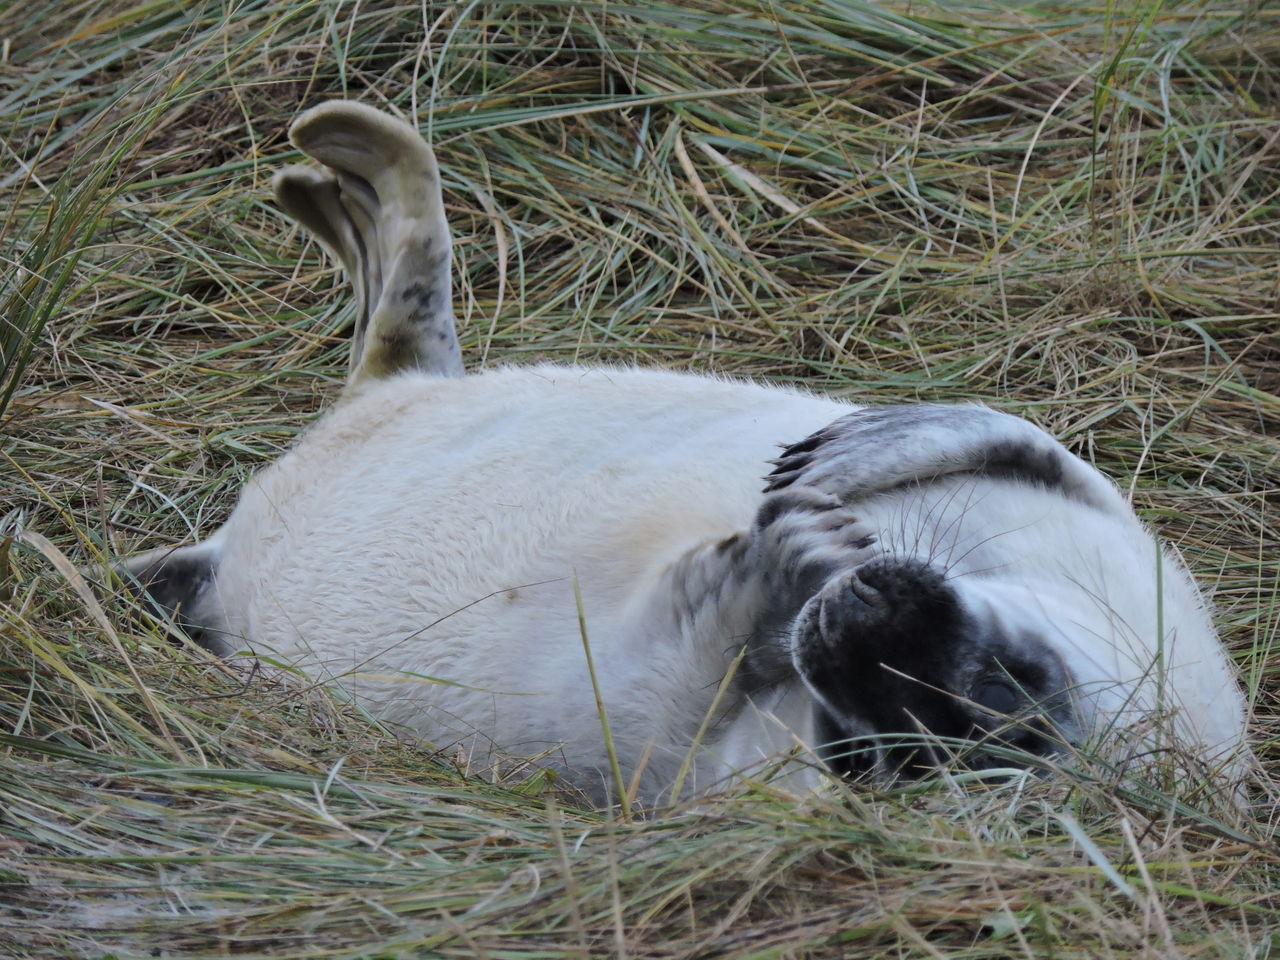 Animal Themes Animals In The Wild Day Donna Nook EyeEm Best Shots Eyeem Nature Grey Seal Mammal Nature No People One Animal Our Best Pics Outdoors Seal Seal Pup Sealife Wildlife Photography